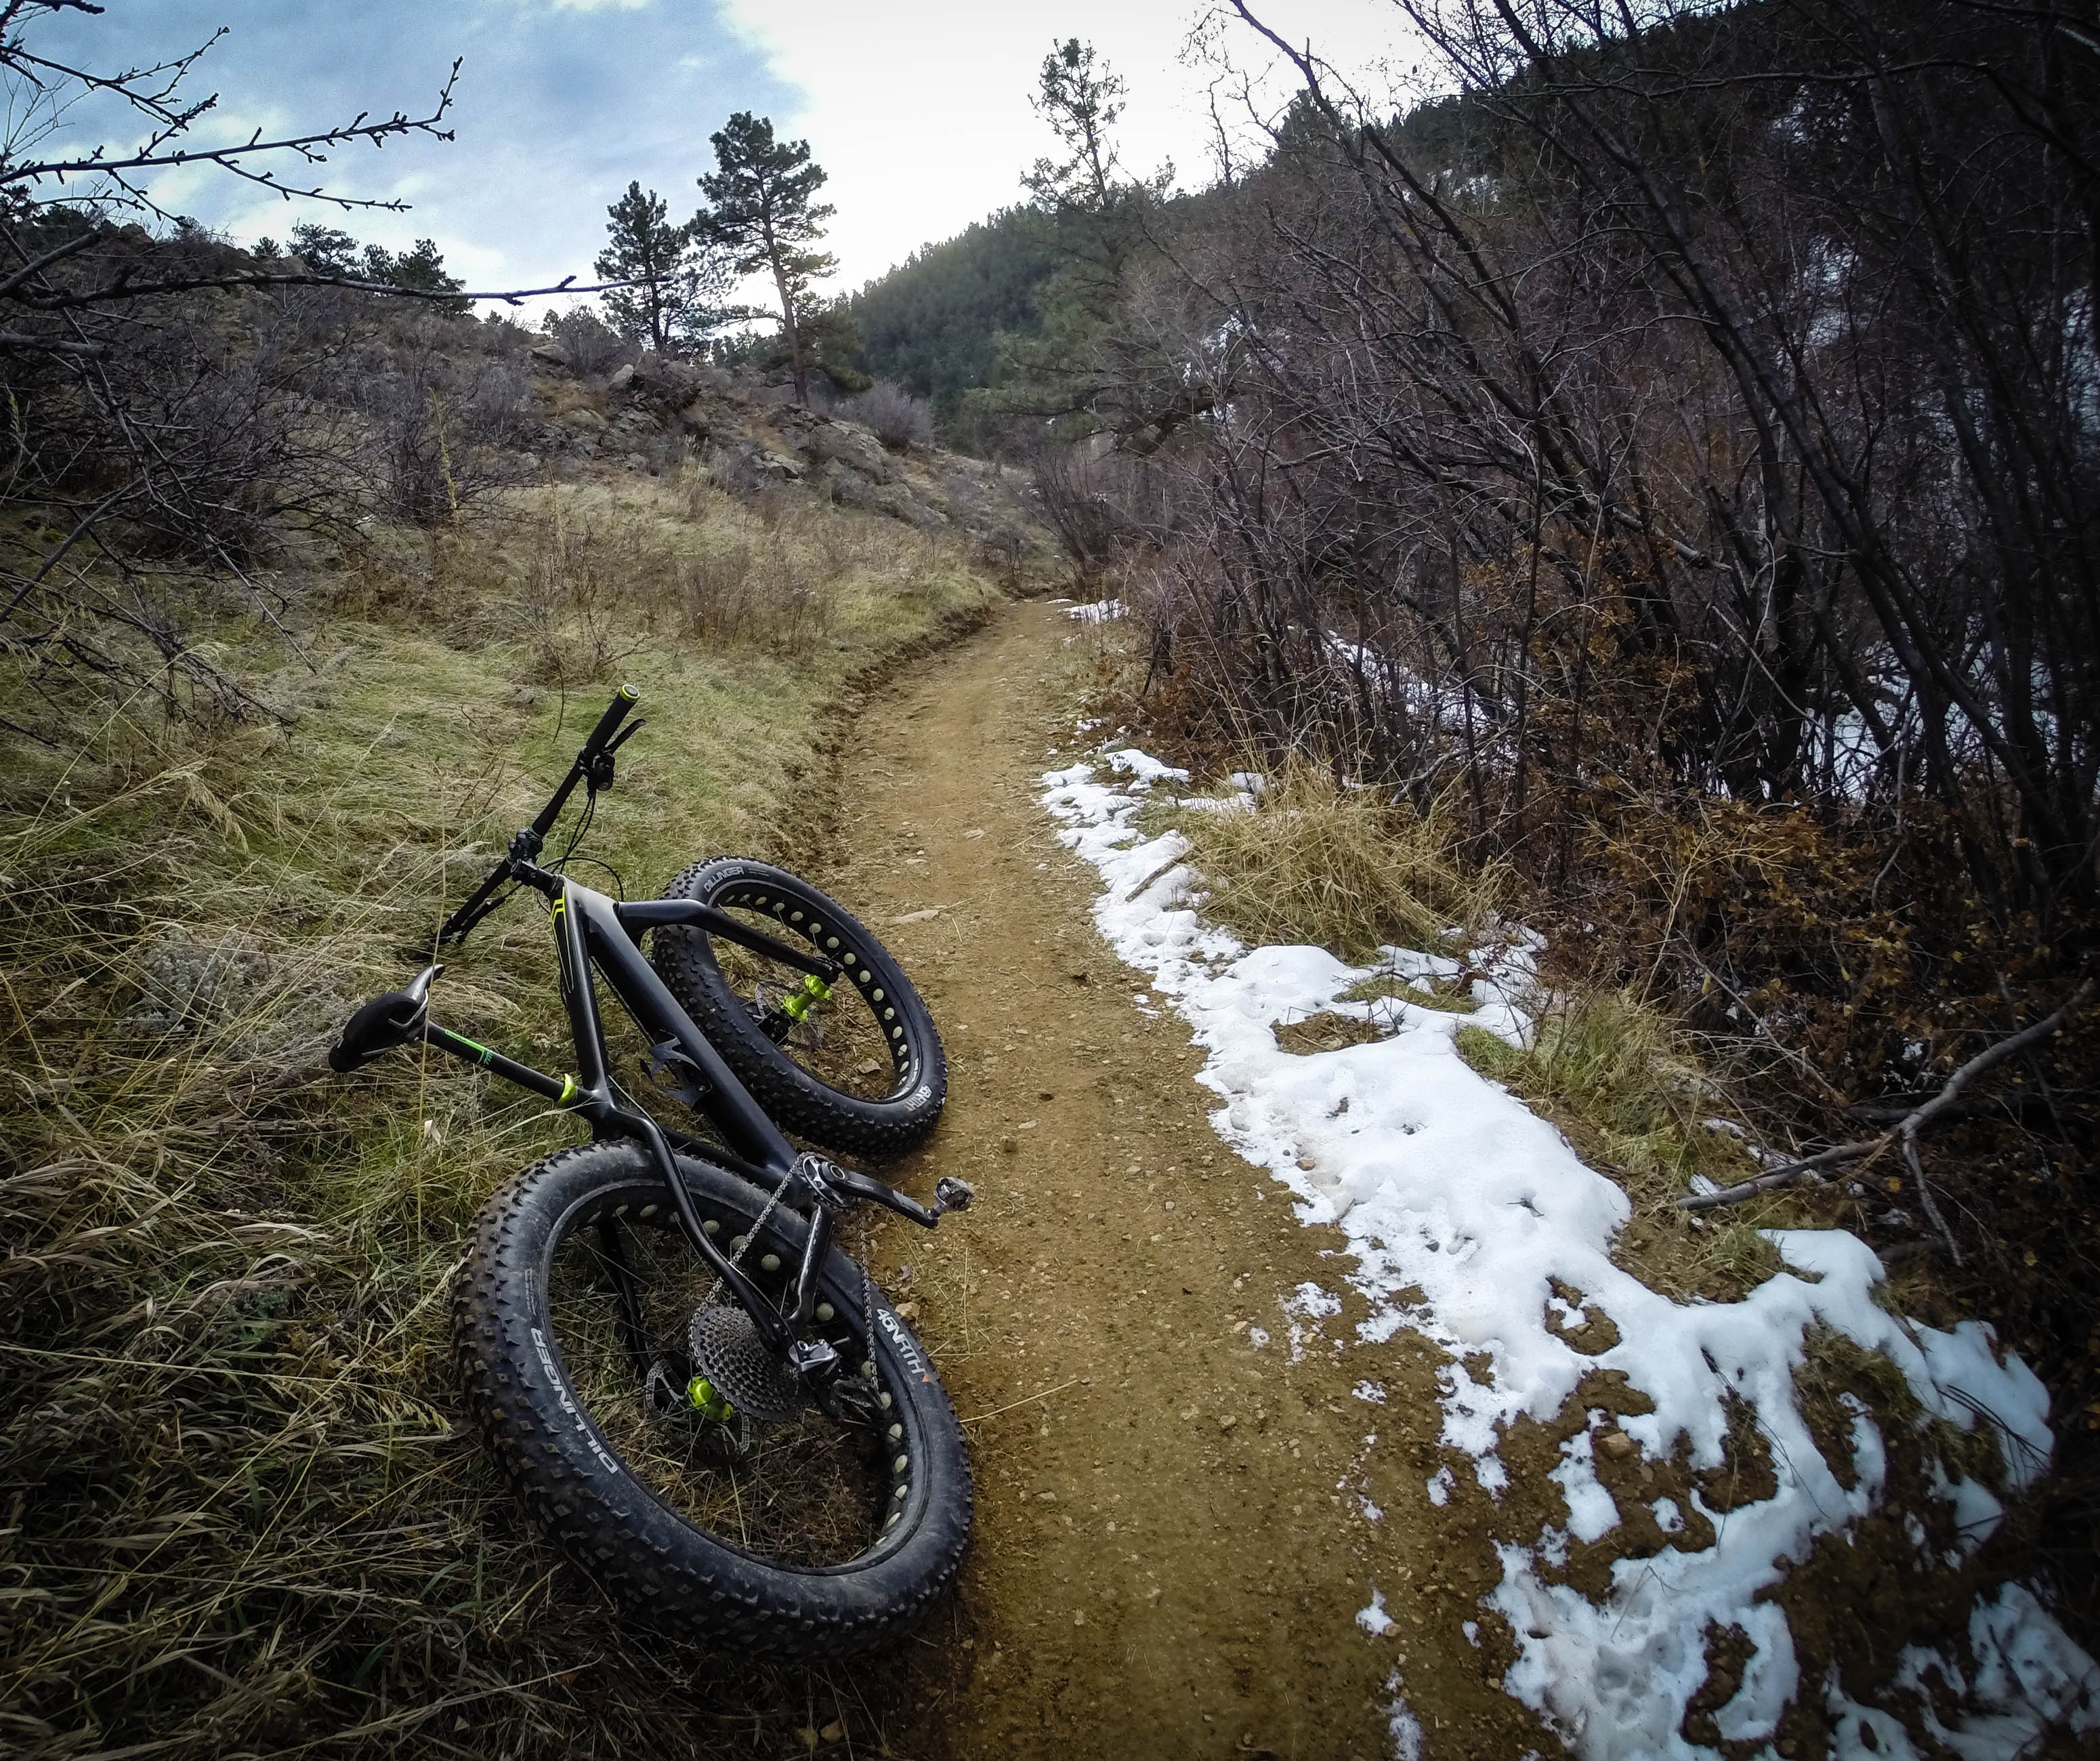 """A section of the trail that is """"dolphin smooth"""", i.e. lacketh of any gnar or gnar-like features"""